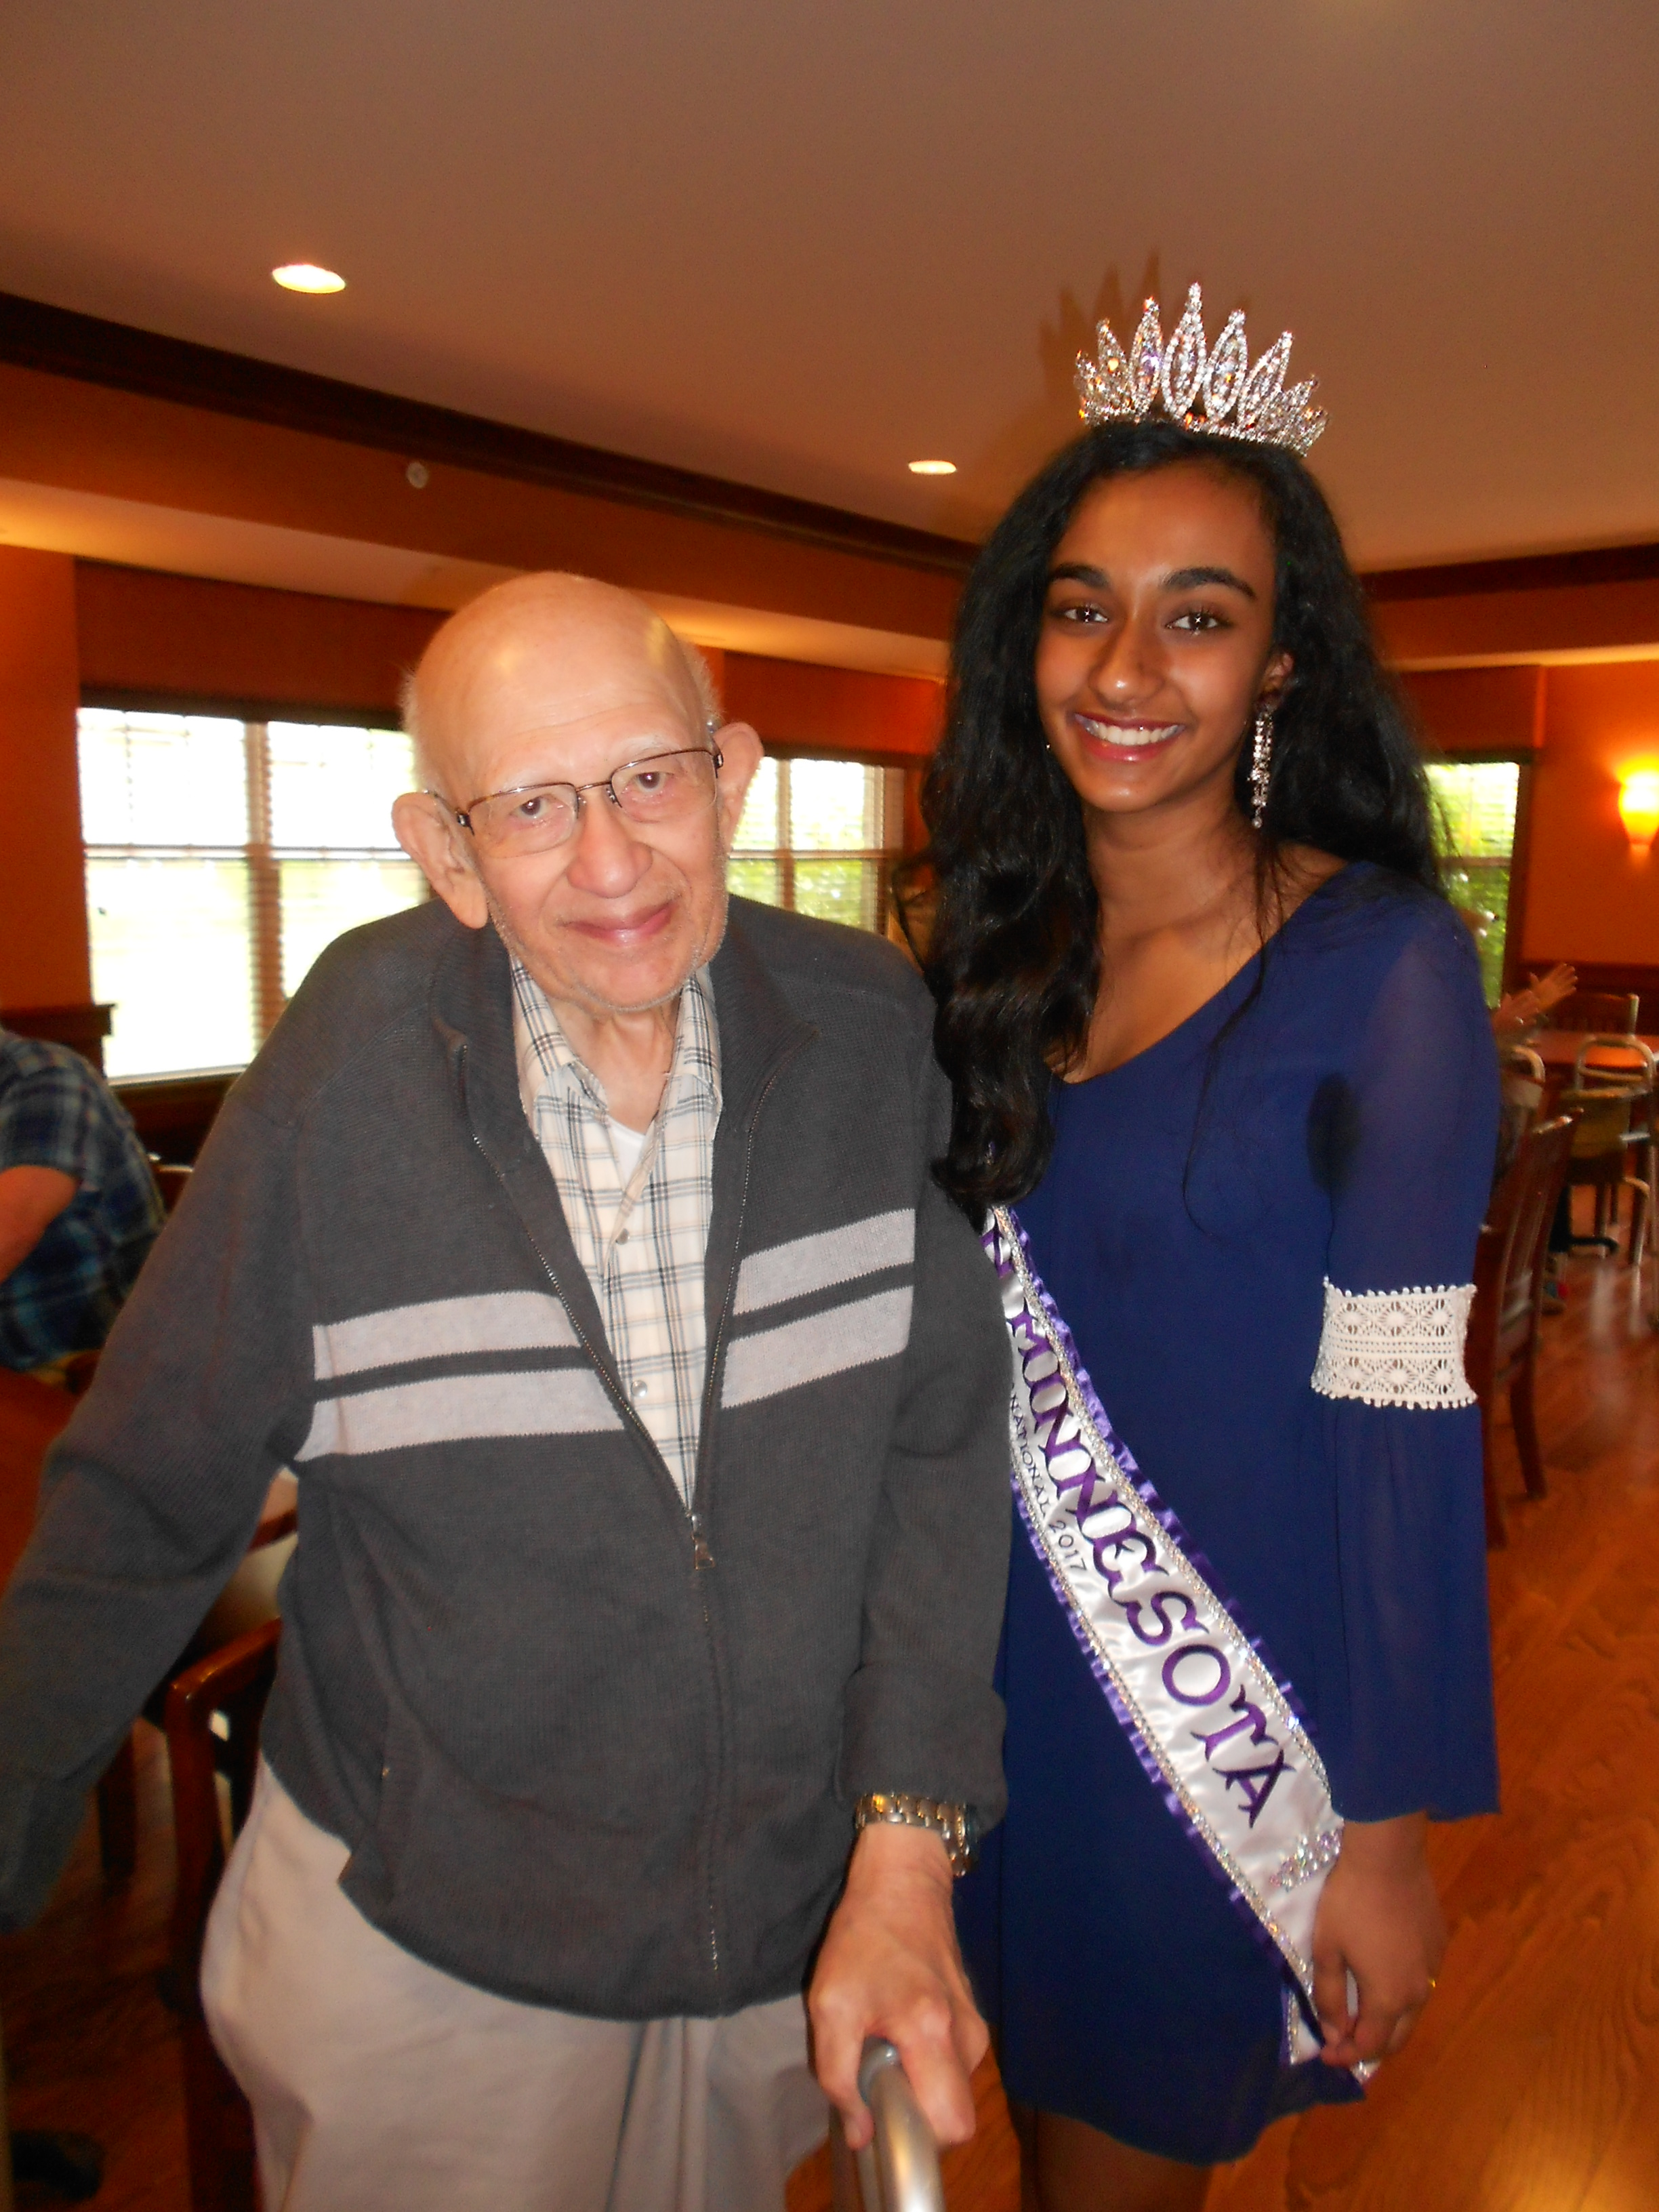 That miss plymouth teen competition in mn